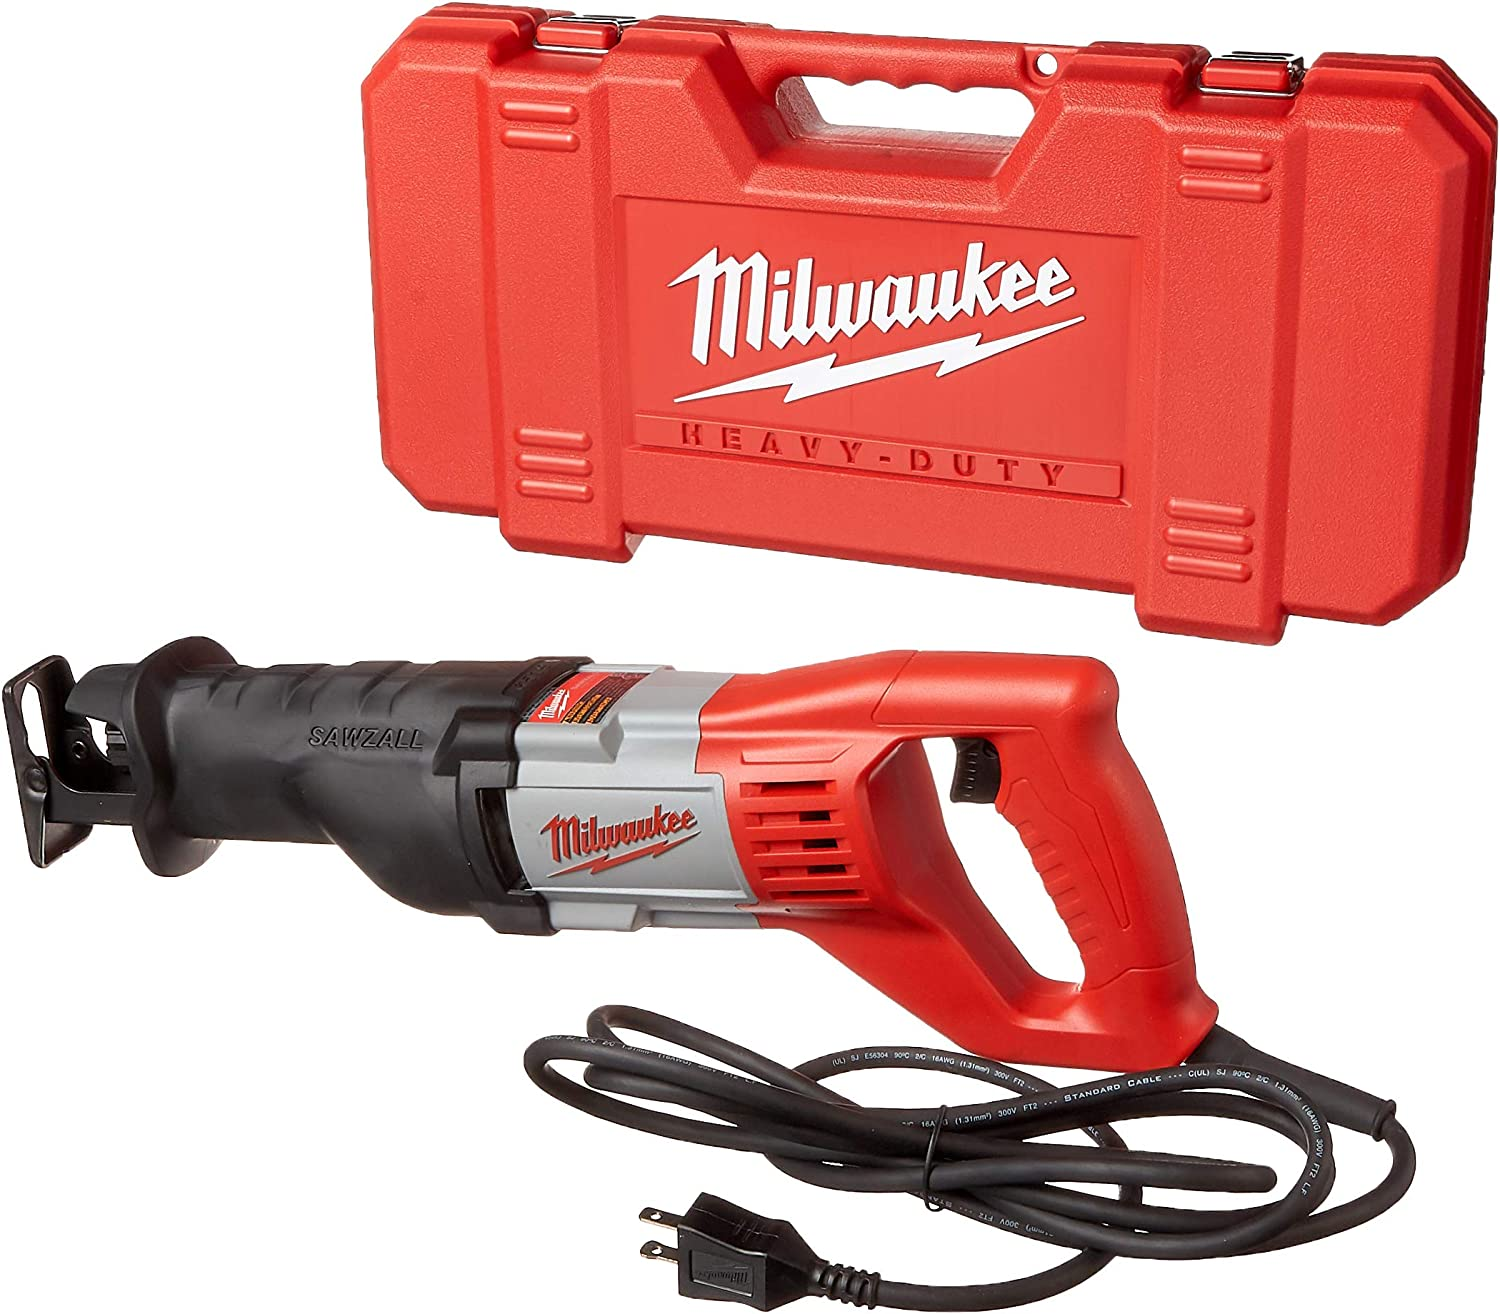 Milwaukee 6519-31 Corded Sawzall